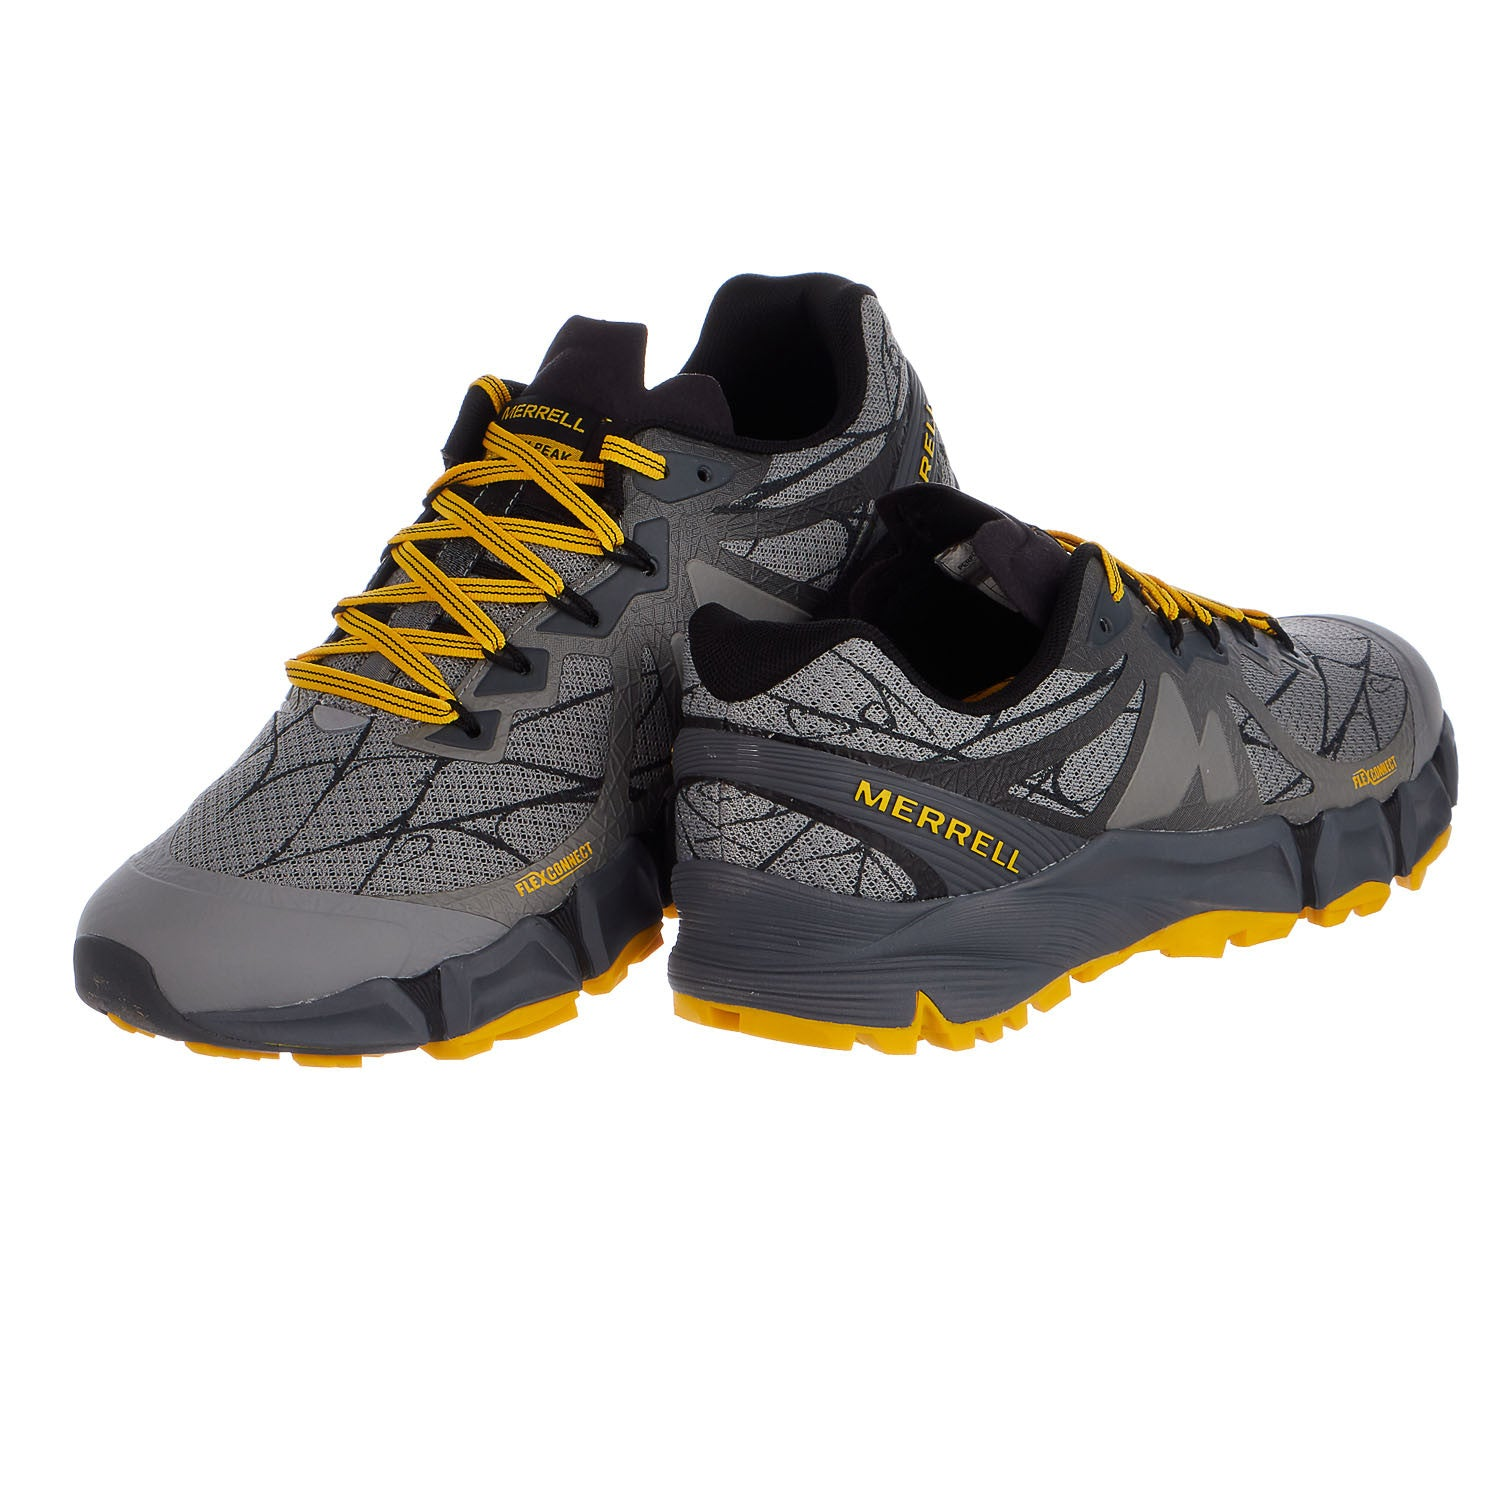 Merrell Agility Peak Flex Trail Runner - Men s - Shoplifestyle 25b50e204ef